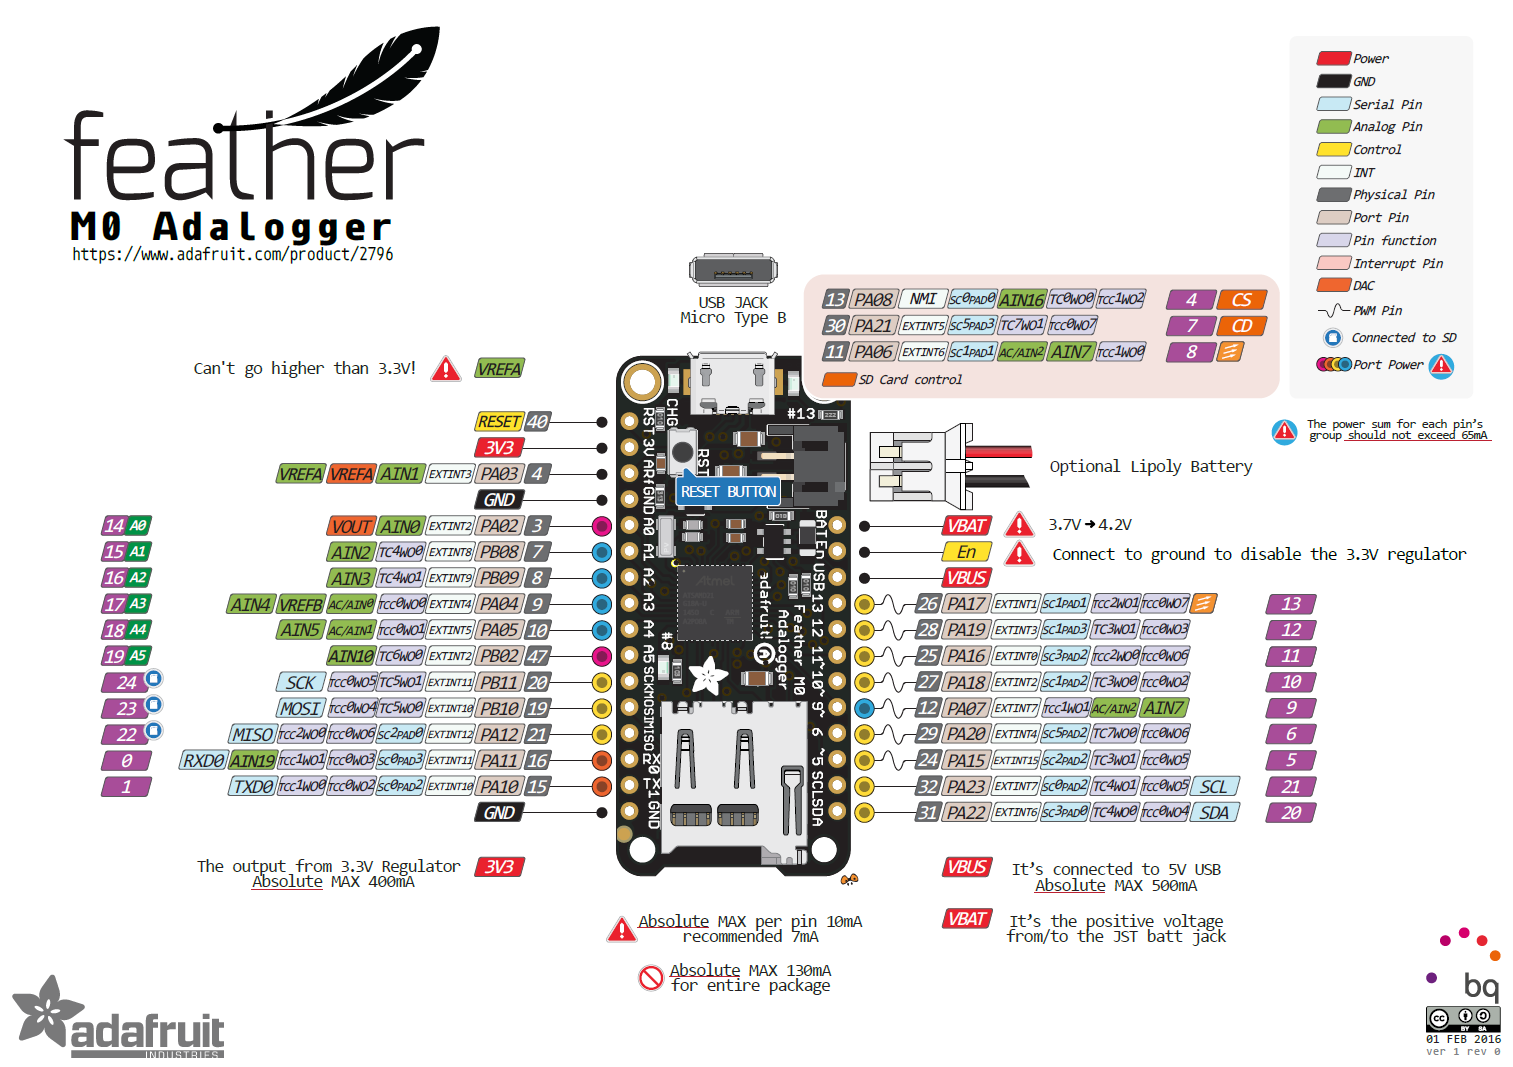 adafruit_products_p2796.png